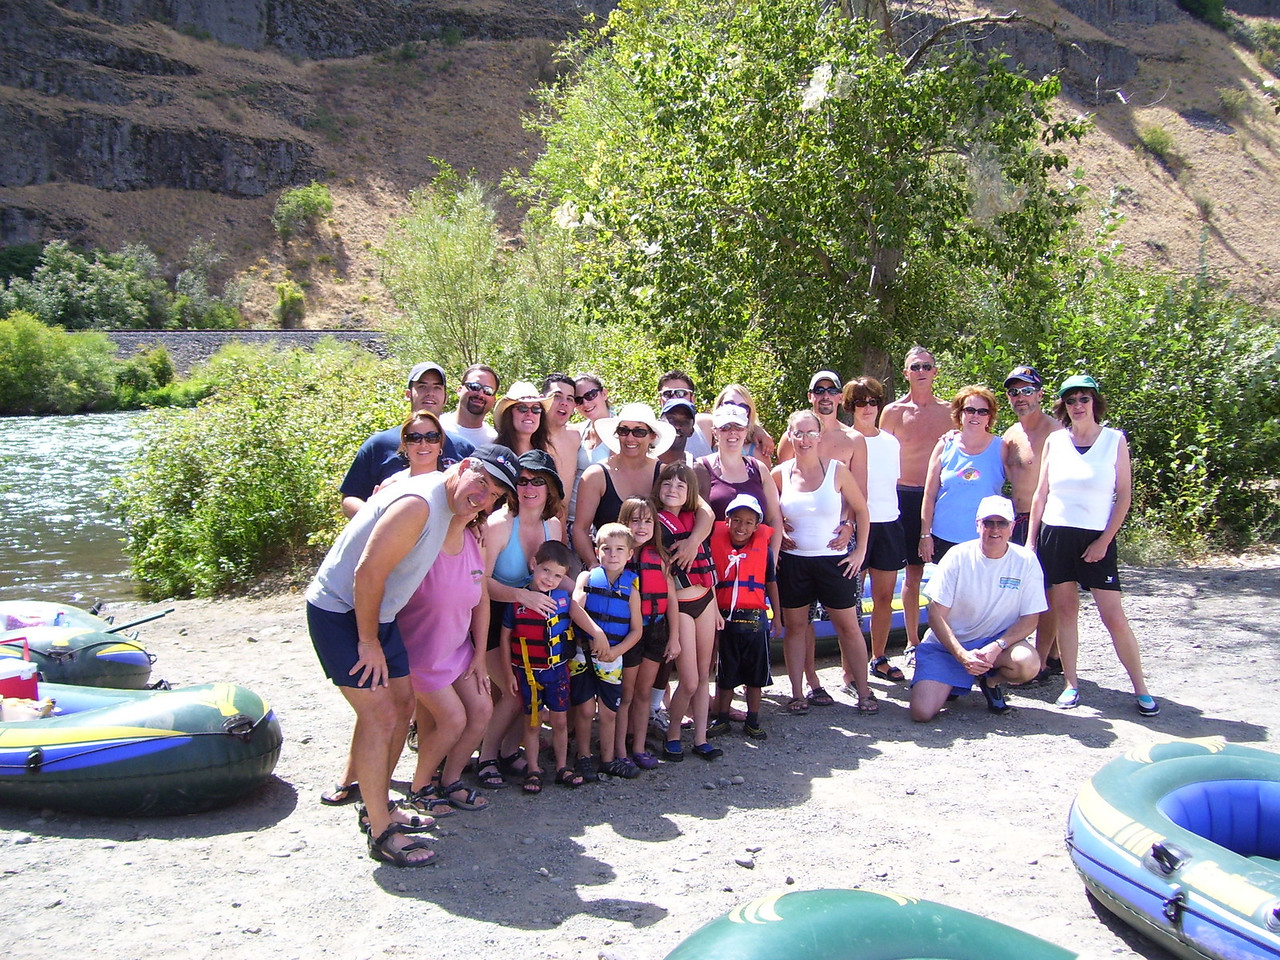 Doug and Nancy's family invited us on a float trip down the Yakima River. We had a great time and Nancy cooked a fabulous dinner and breakfast afterwards.